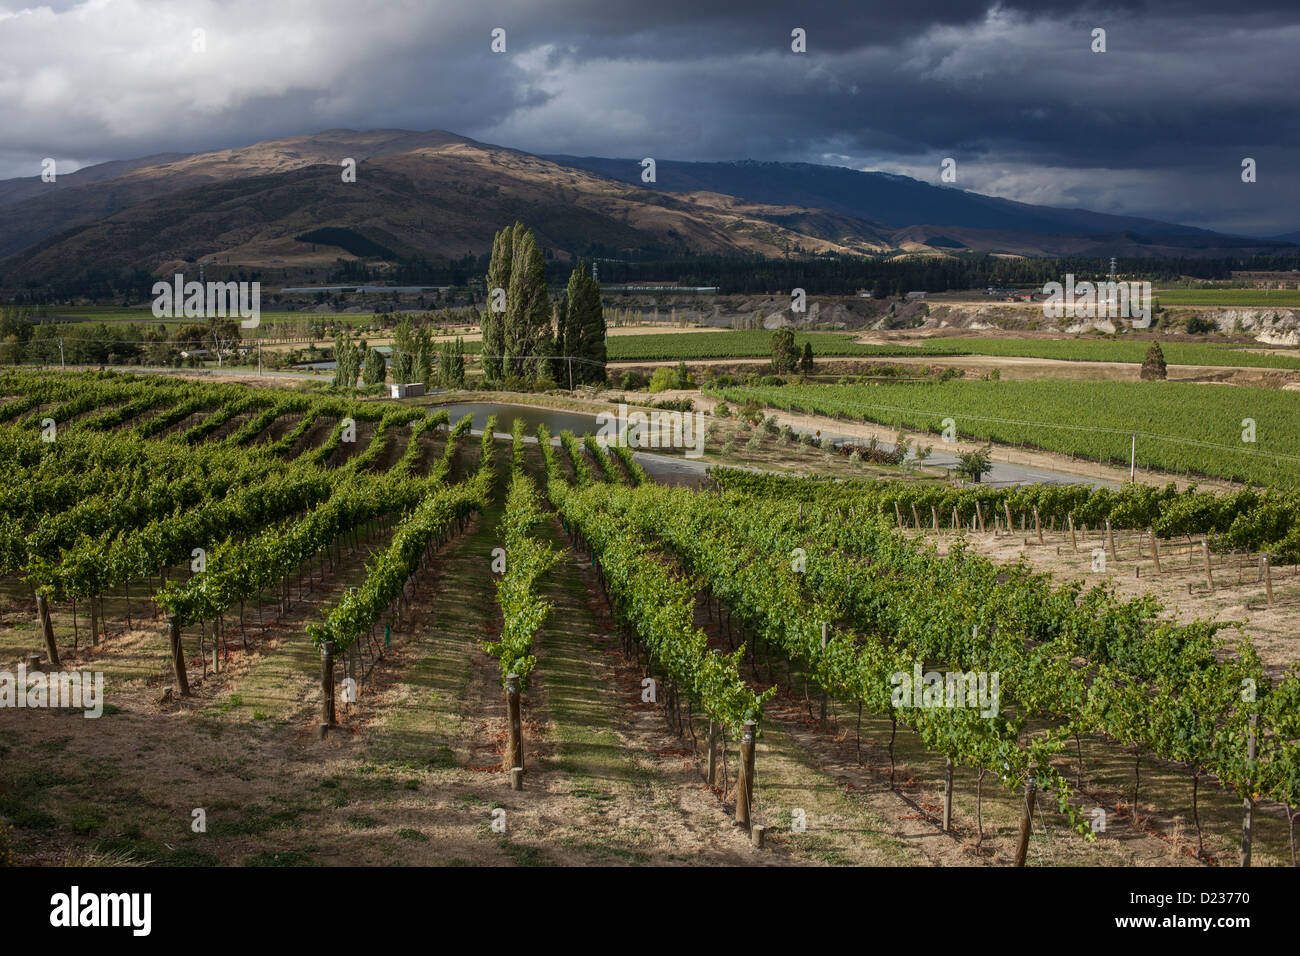 Vineyard, Mount Difficulty region, Central Otago, South Island, New Zealand - Stock Image